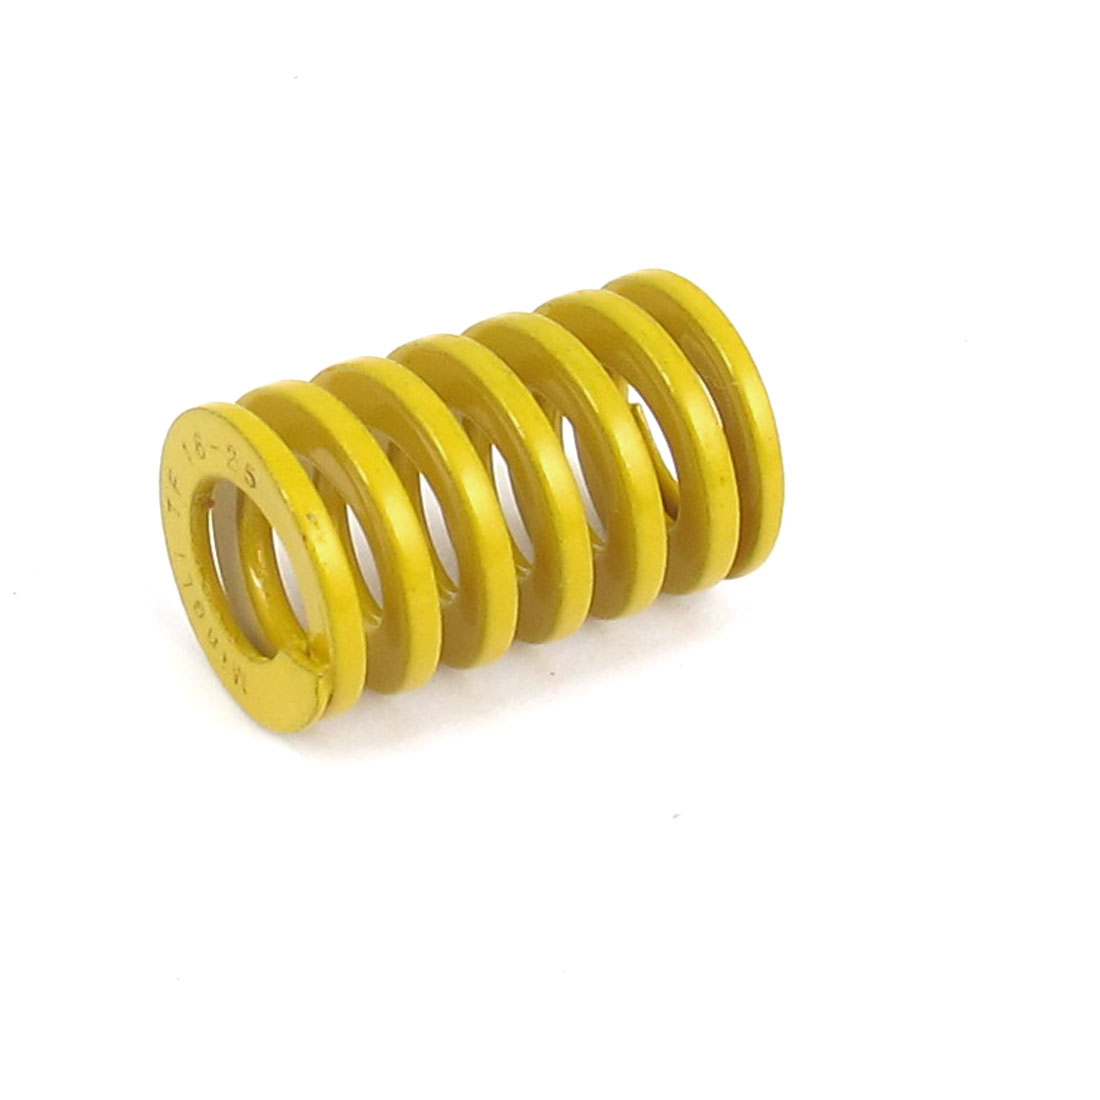 16mmx25mm Chromium Alloy Steel Lightest Load Die Spring Yellow